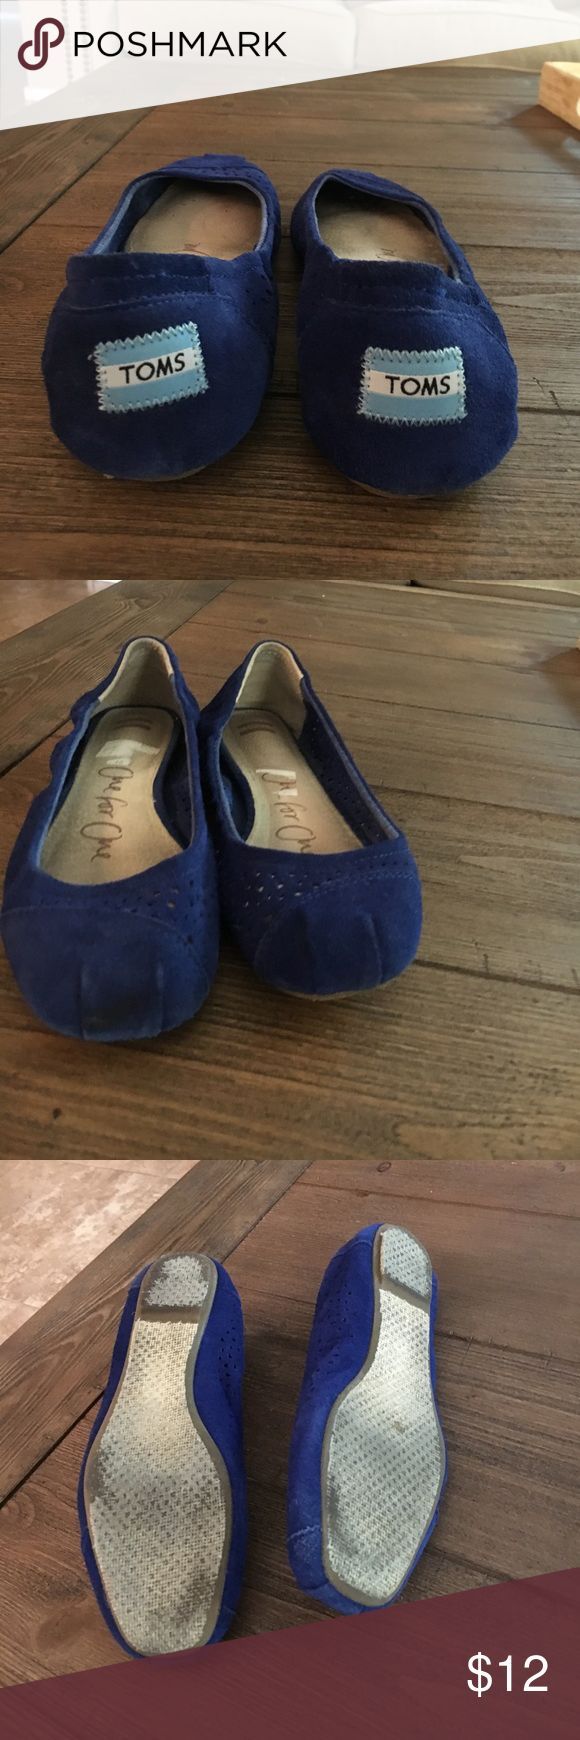 Toms Women's Ballet Flats Used Toms Women's Ballet Flats Cutout Blue Moroccan Casual Shoe TOMS Shoes Flats & Loafers